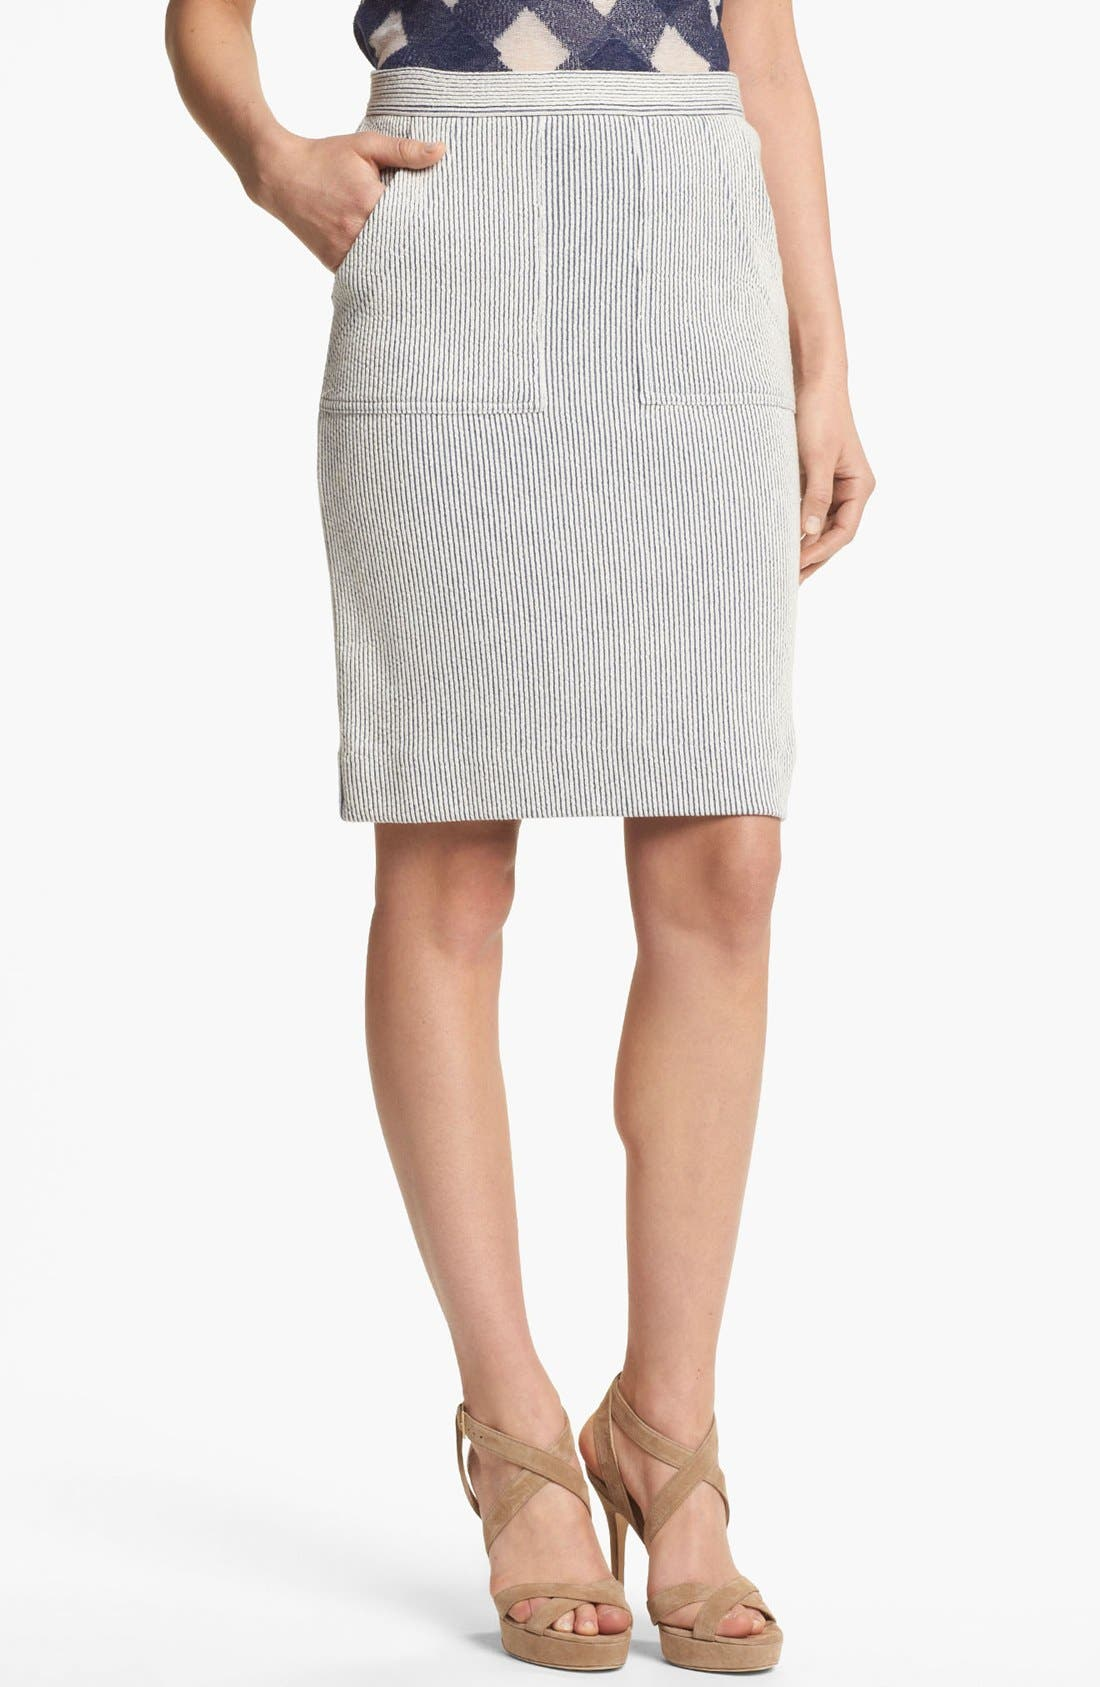 Alternate Image 1 Selected - MARC BY MARC JACOBS Stripe Knit Pencil Skirt